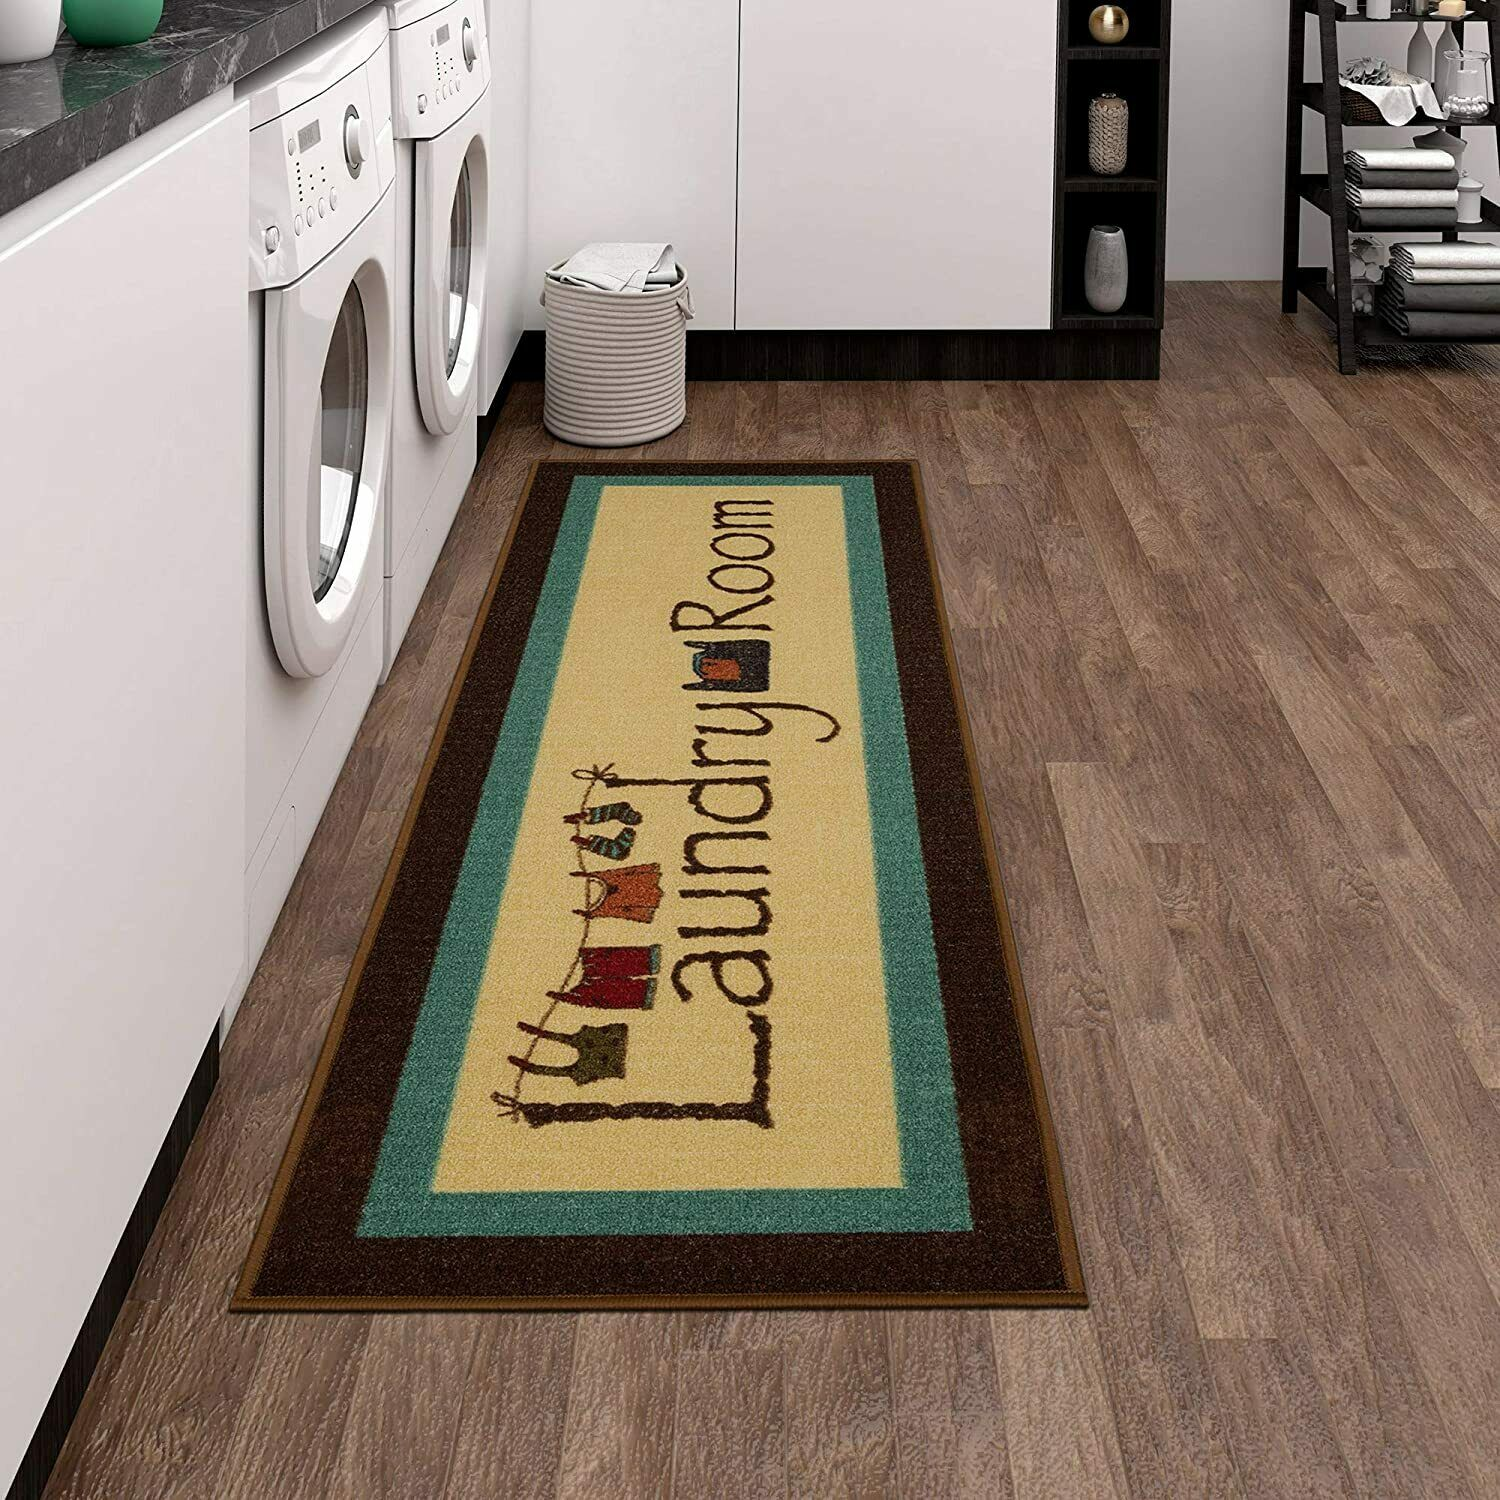 Carpet Runners for Laundry Area